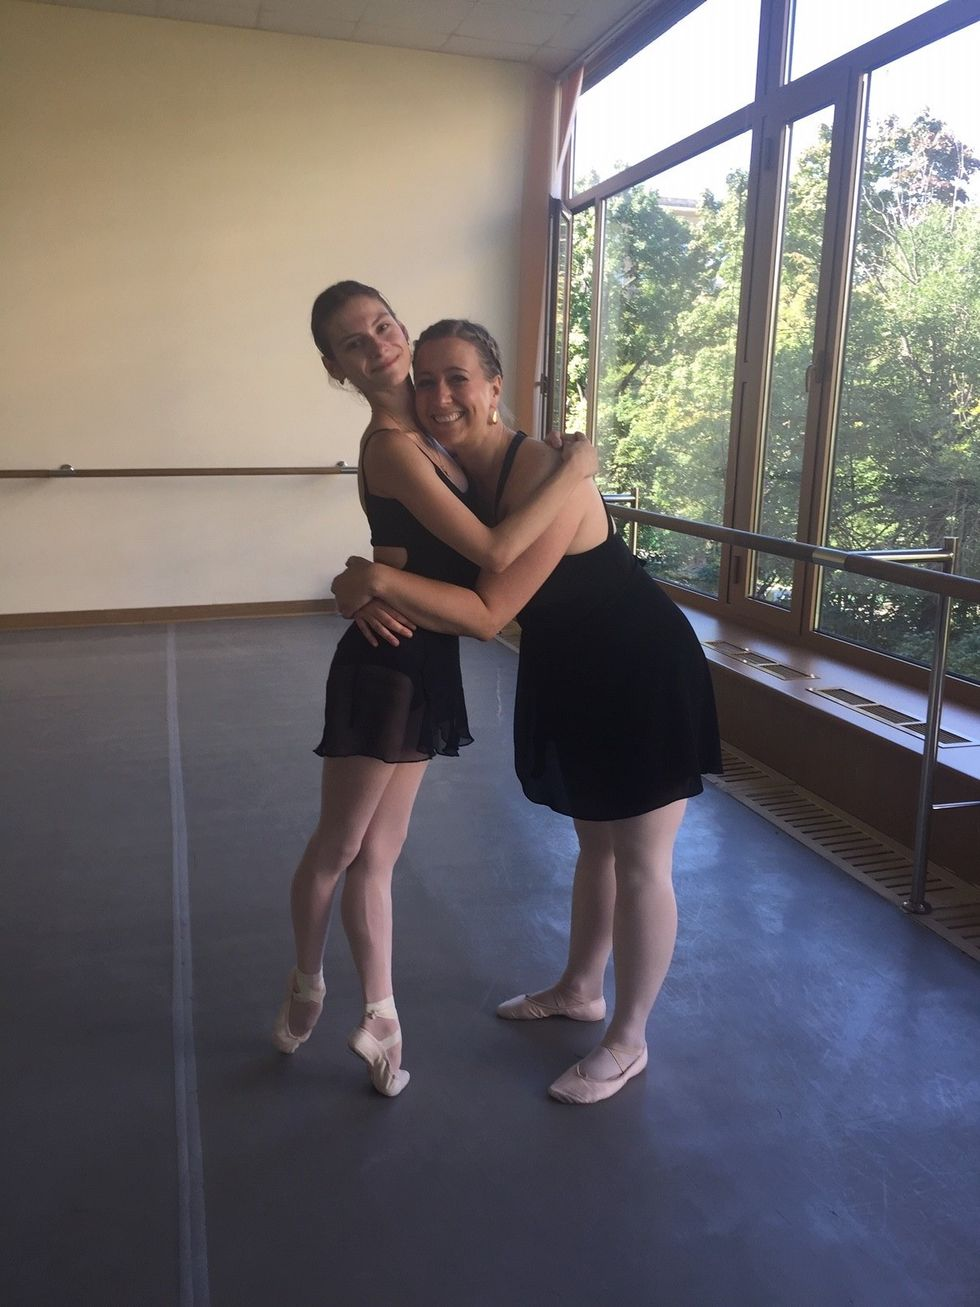 Strakhova (left) hugs Collier while Strakhova stands in relev\u00e9. Both women are wearing ballet slippers, pink tights, and black ballet skirts and leotards, while standing in a ballet studio.